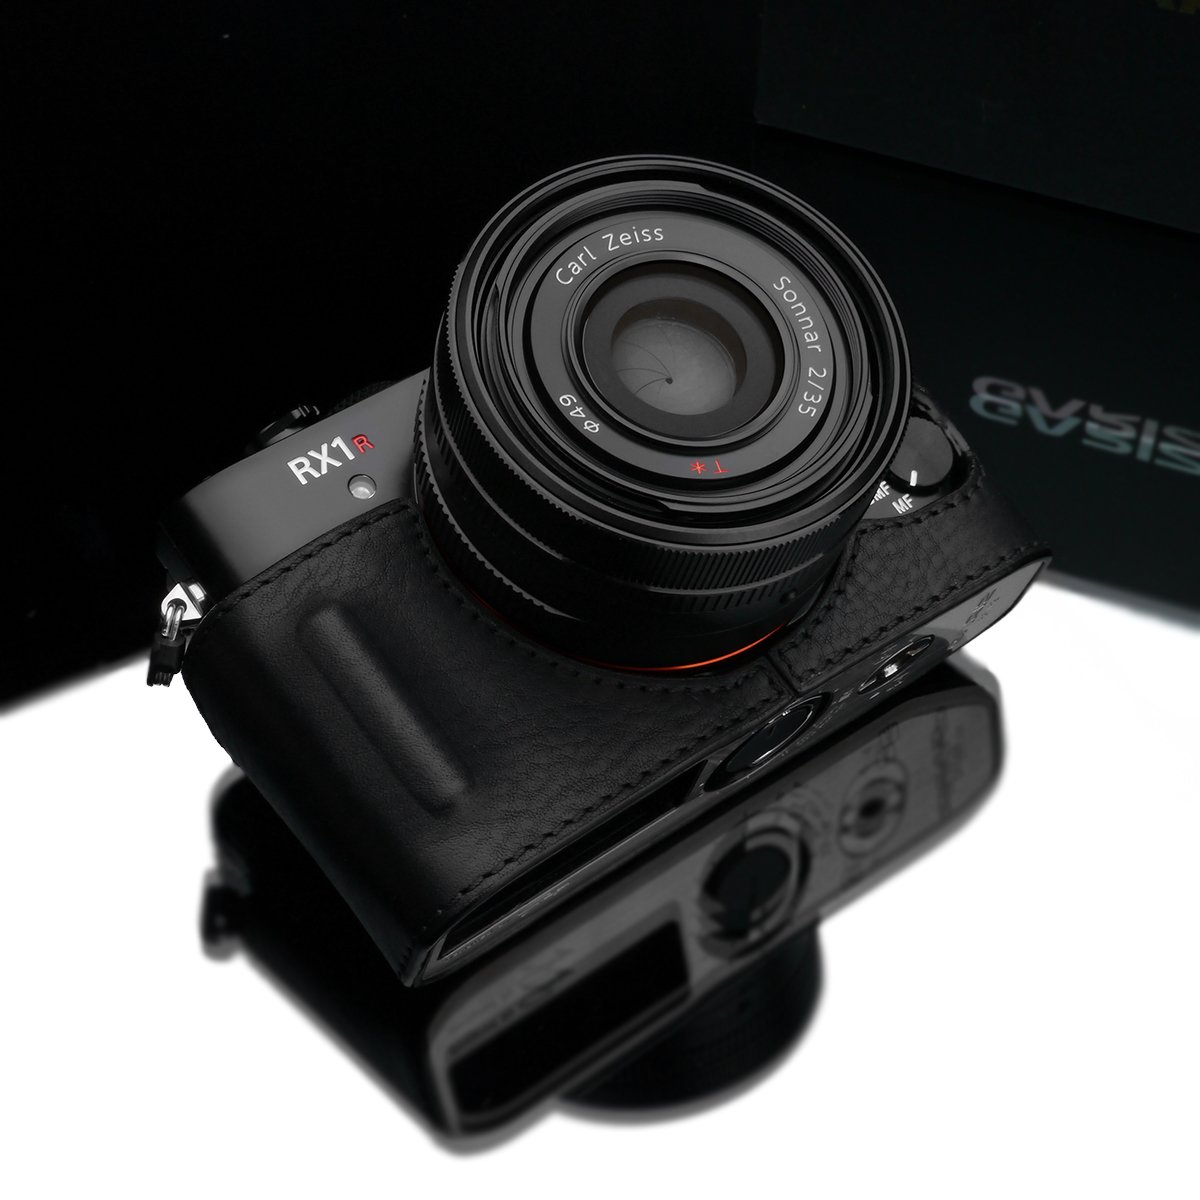 Gariz hg-rx1r2bkレザーメタルHalf Case for Sony rx1rii rx1r2 rx1r II、ブラック   B01A3W2YMG